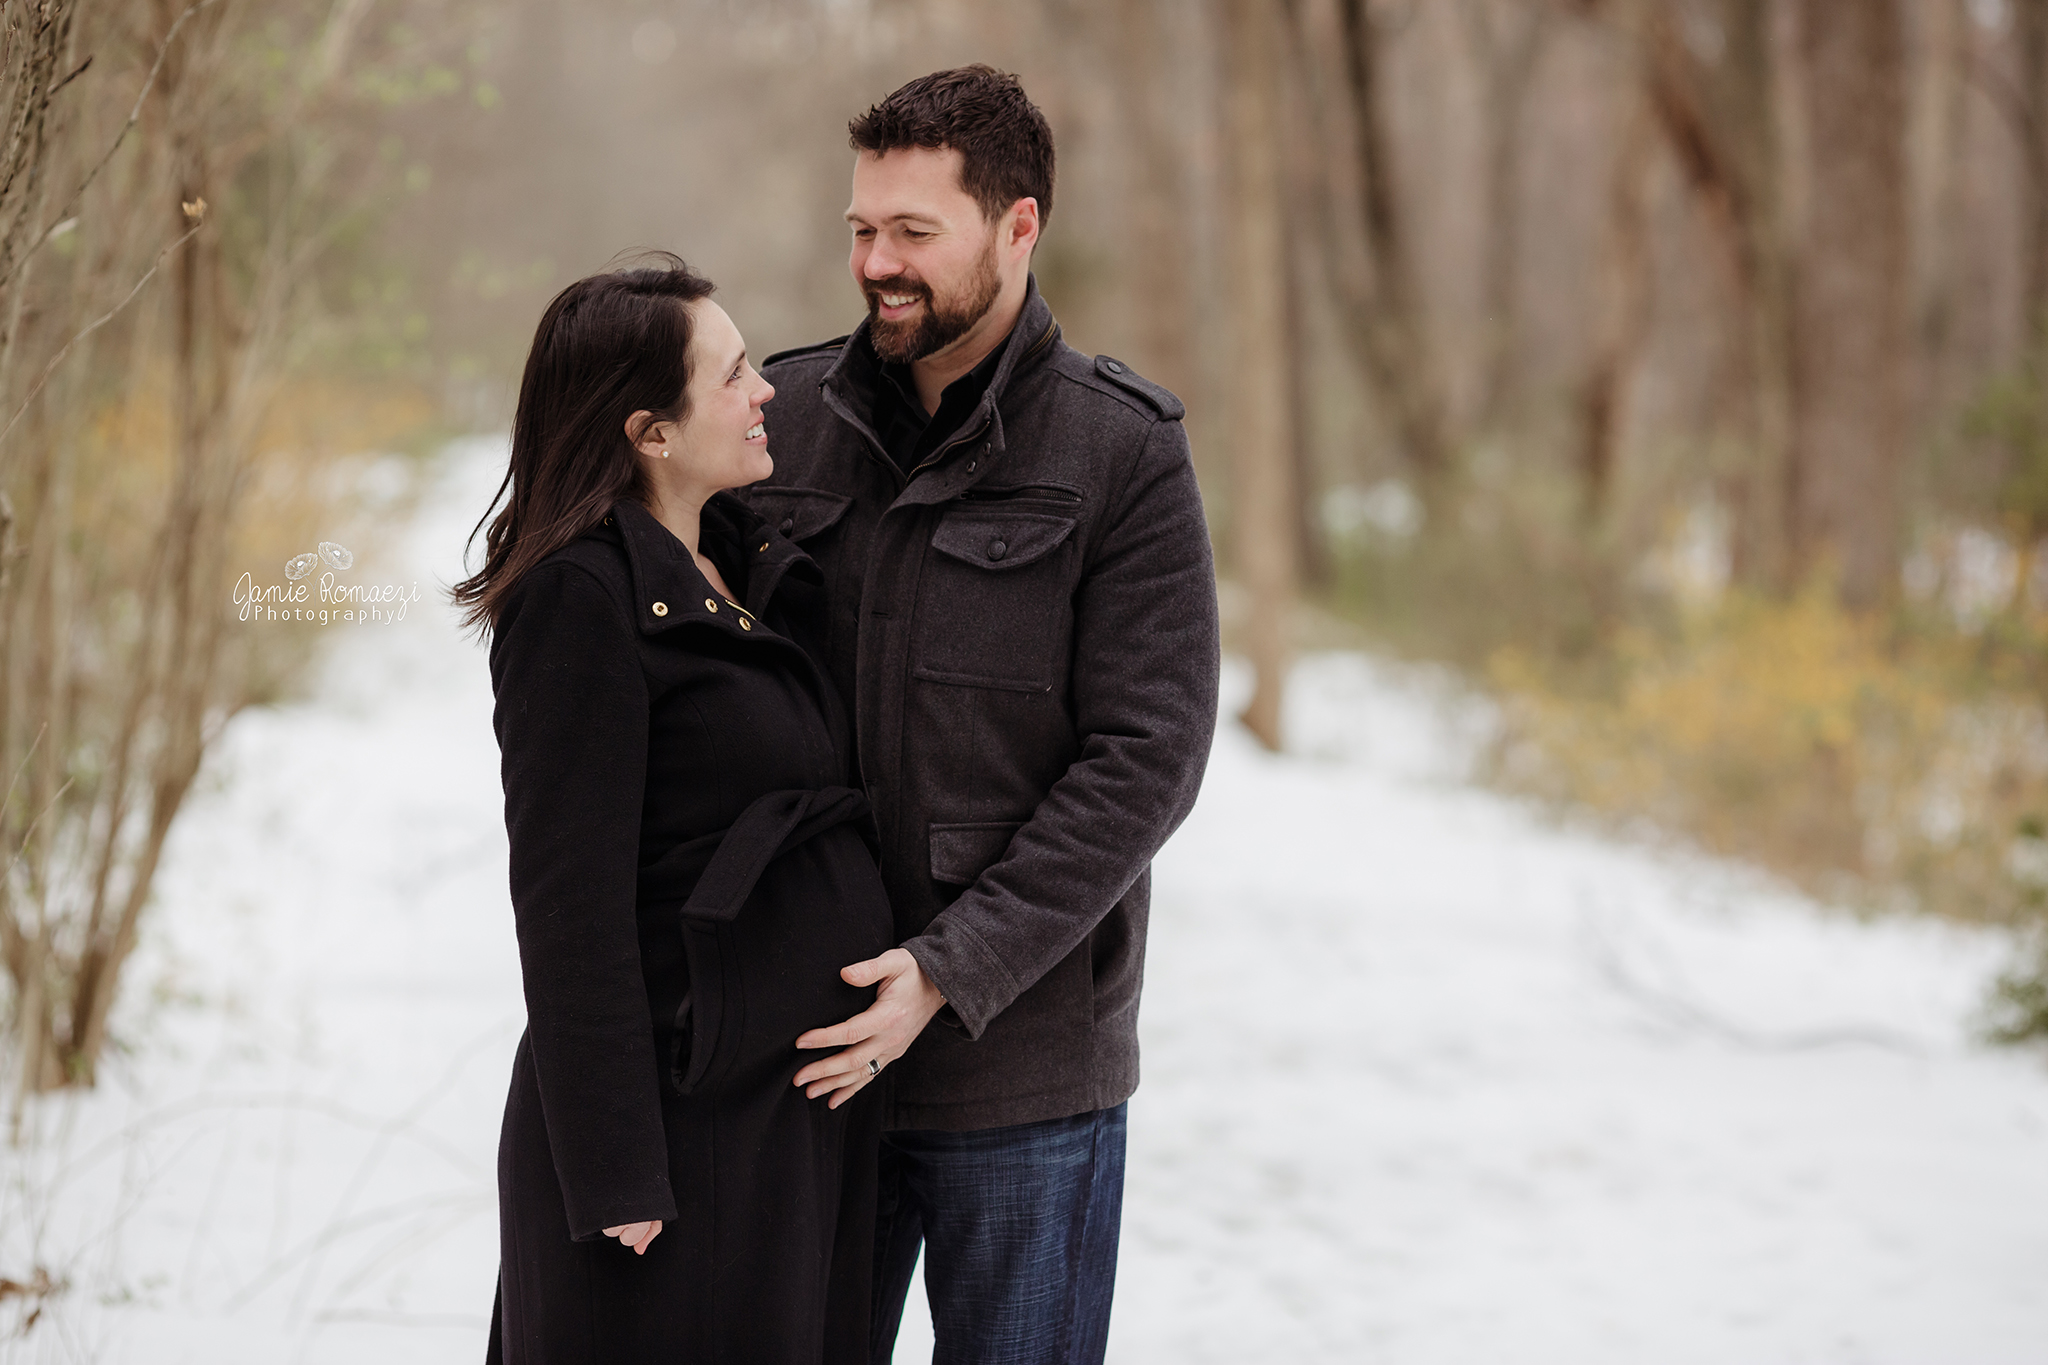 Couple wearing coats in snow maternity photos